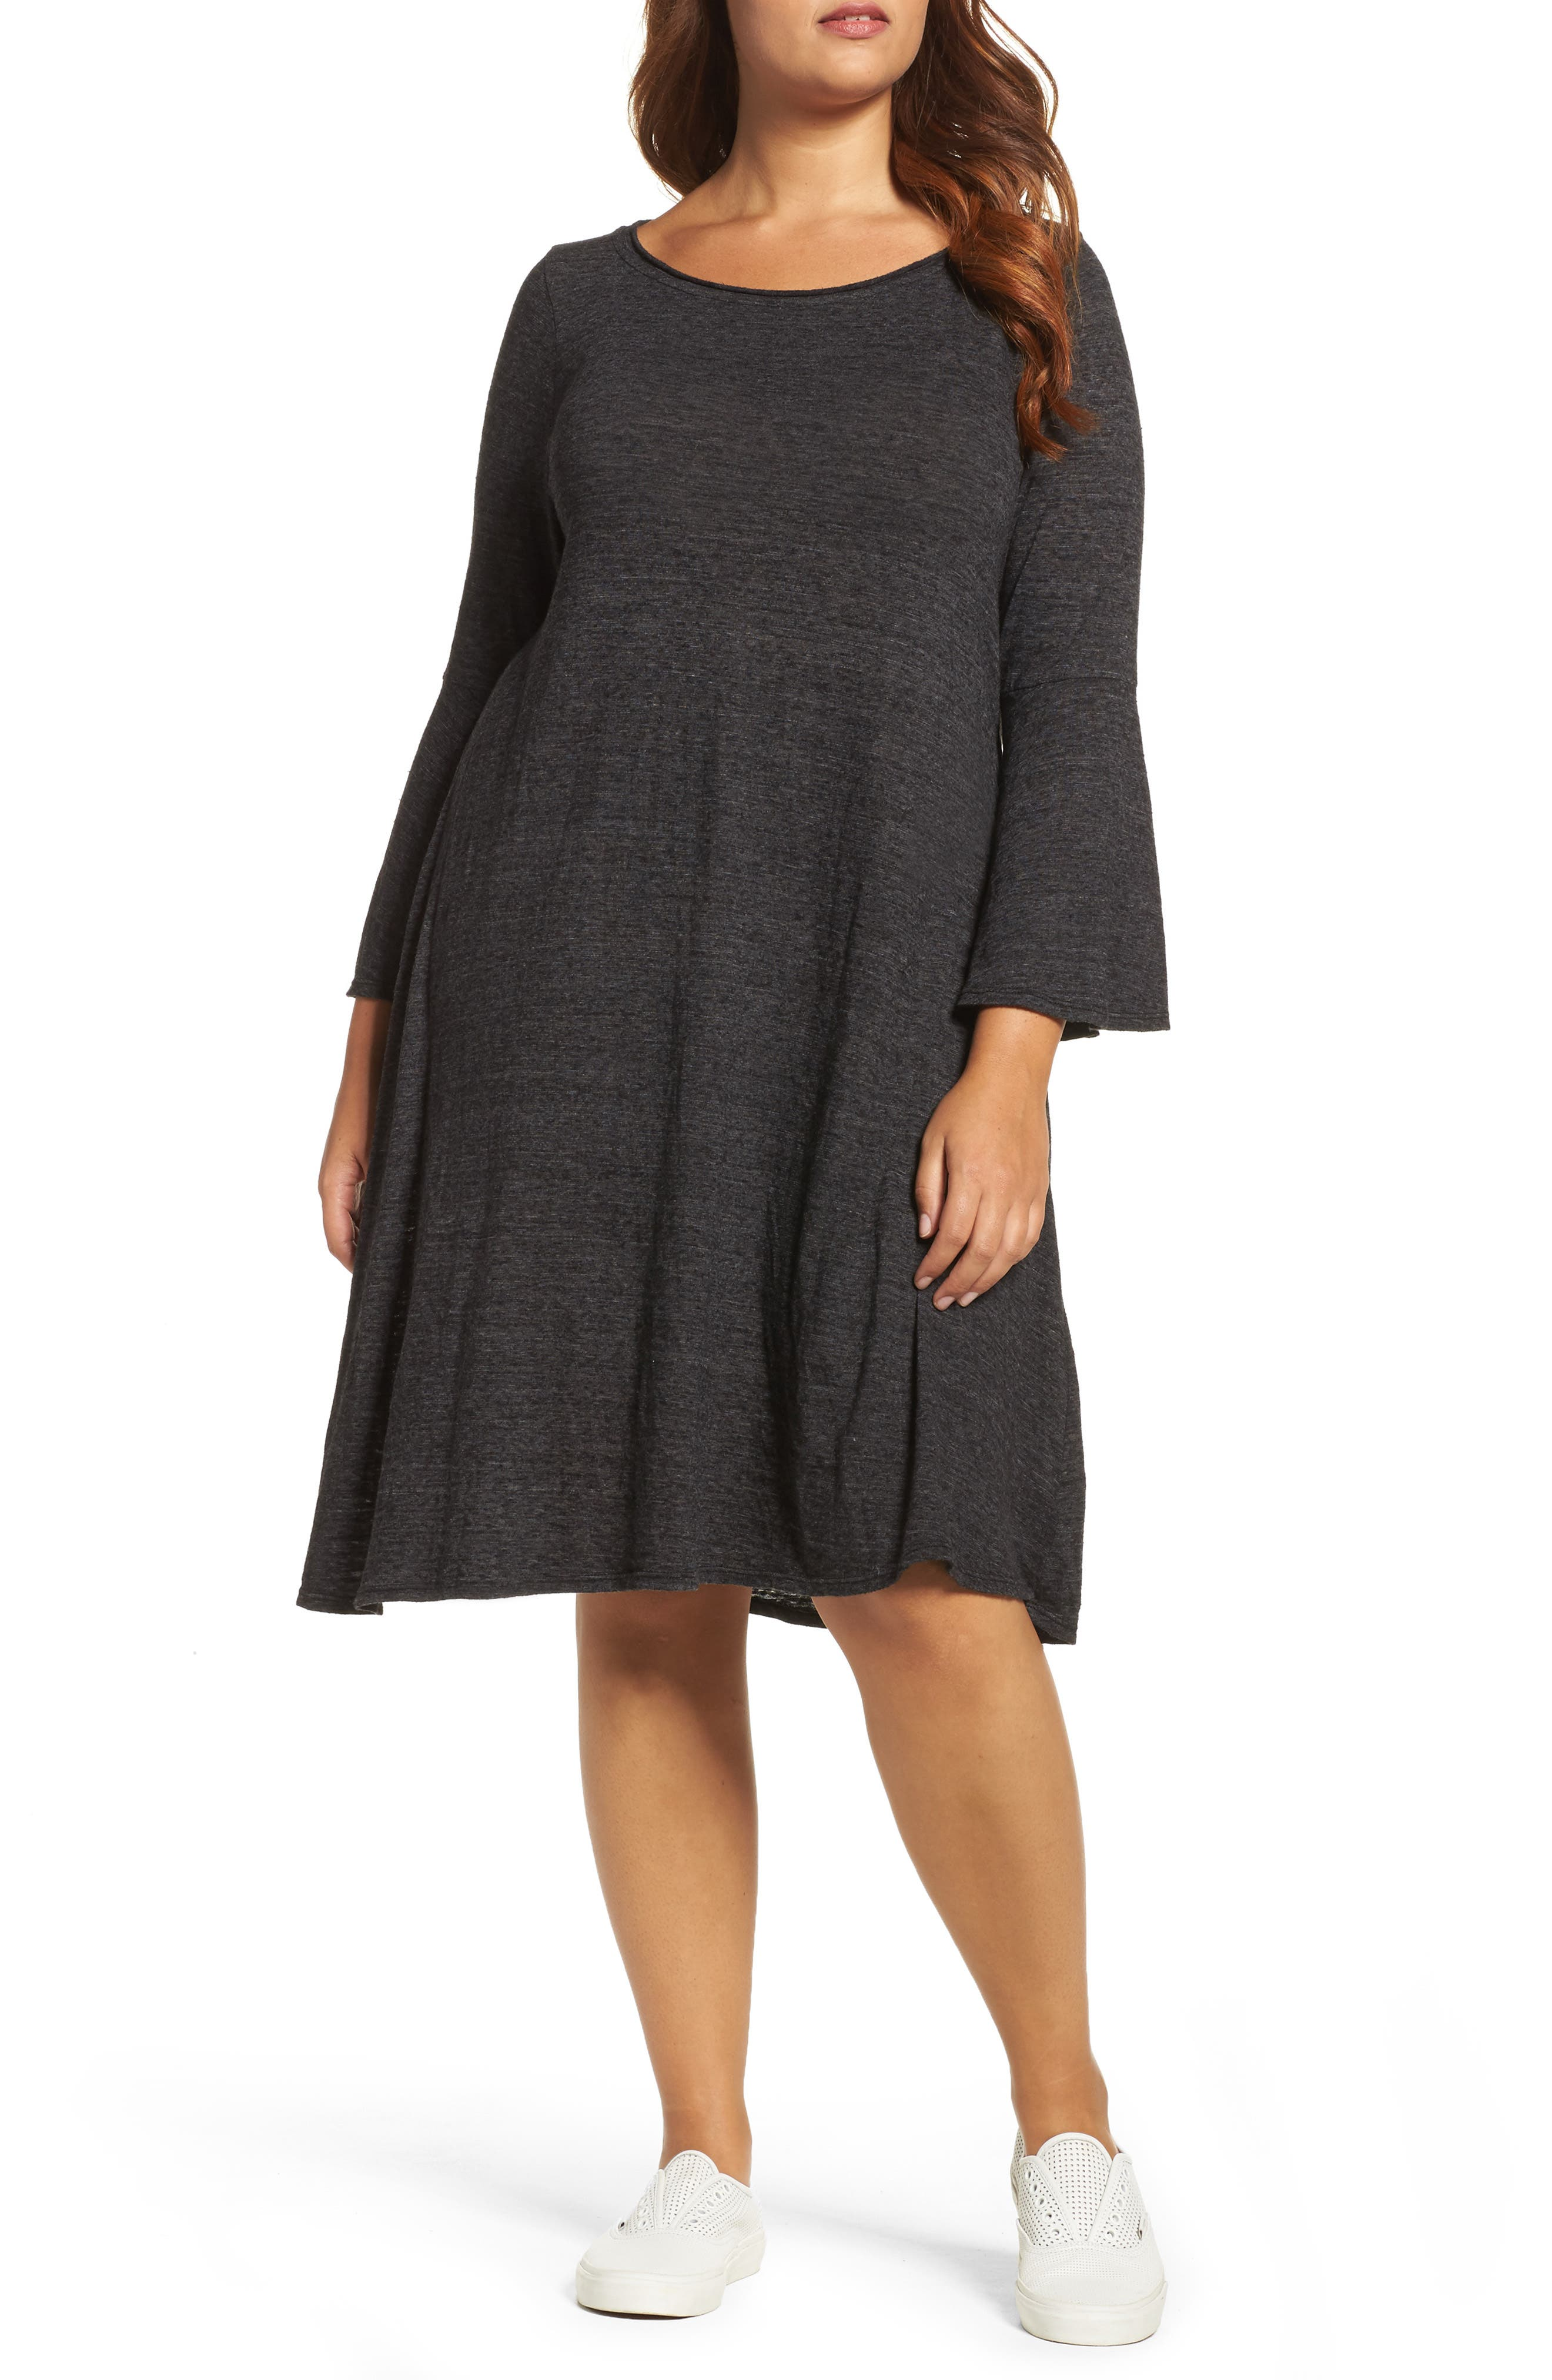 Alternate Image 1 Selected - Three Dots Nepps Bell Sleeve Dress (Plus Size)